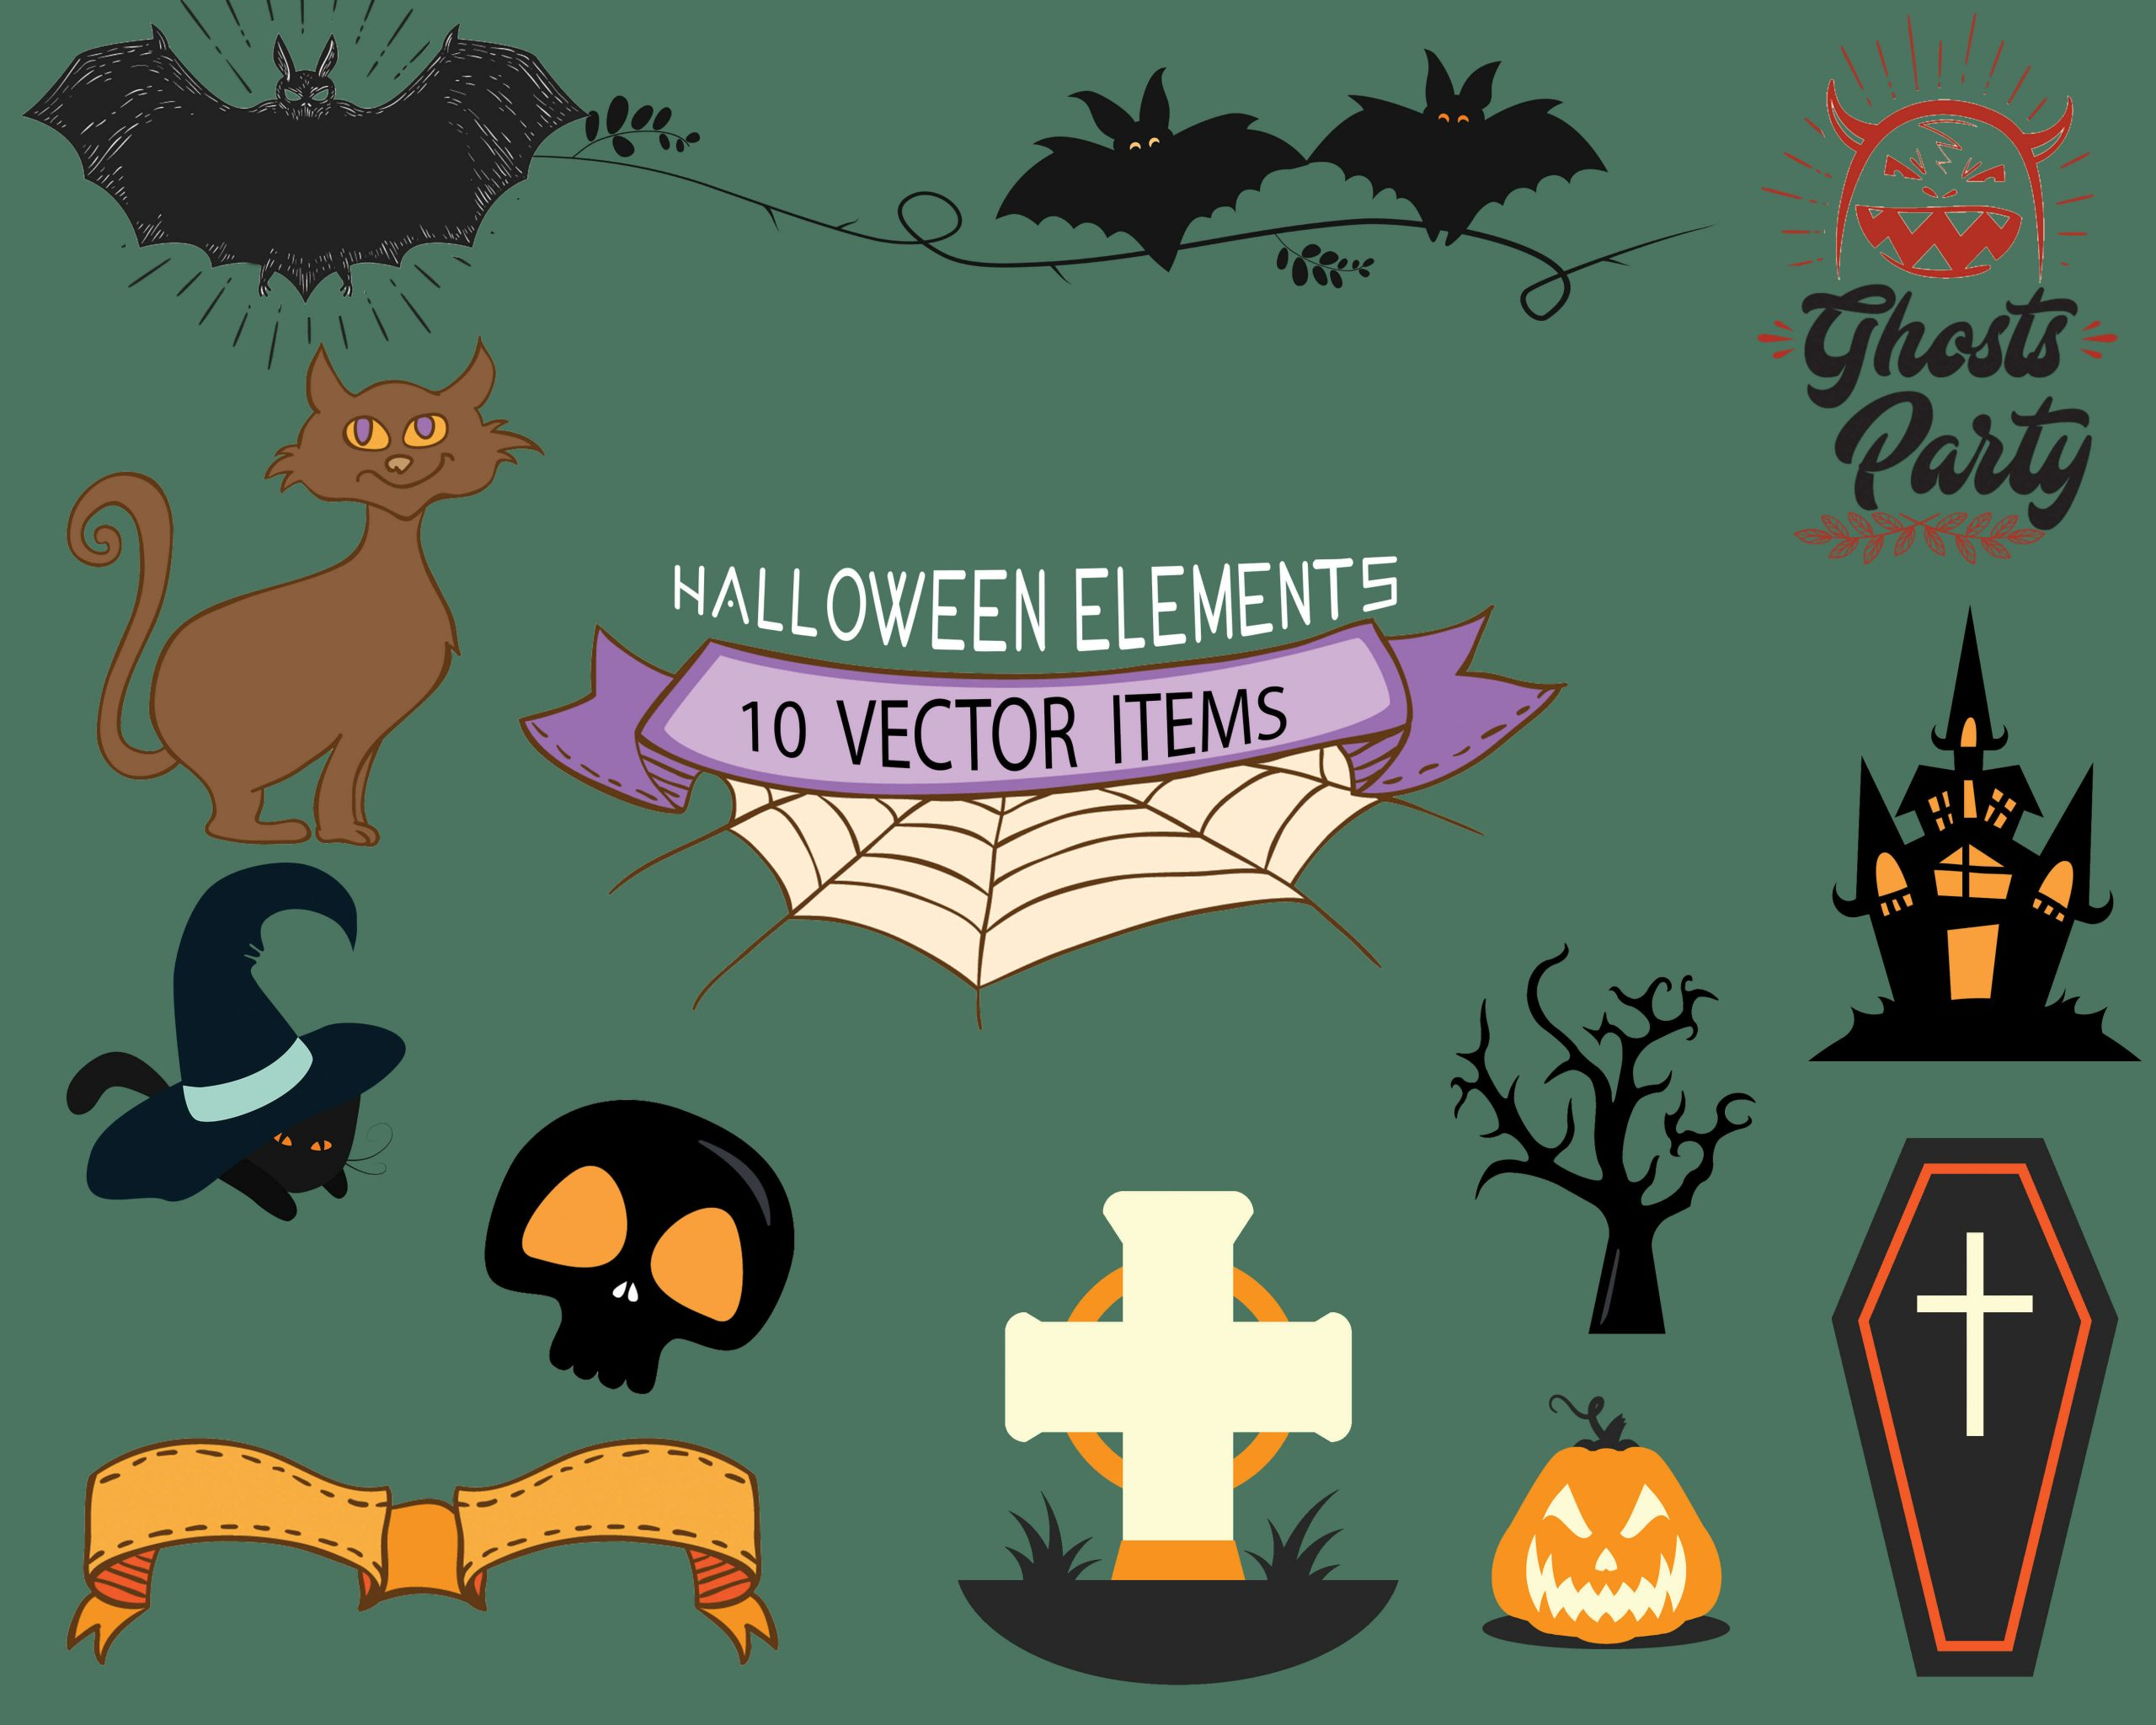 Spooky Vector Images - 10 Ghost Party Elements